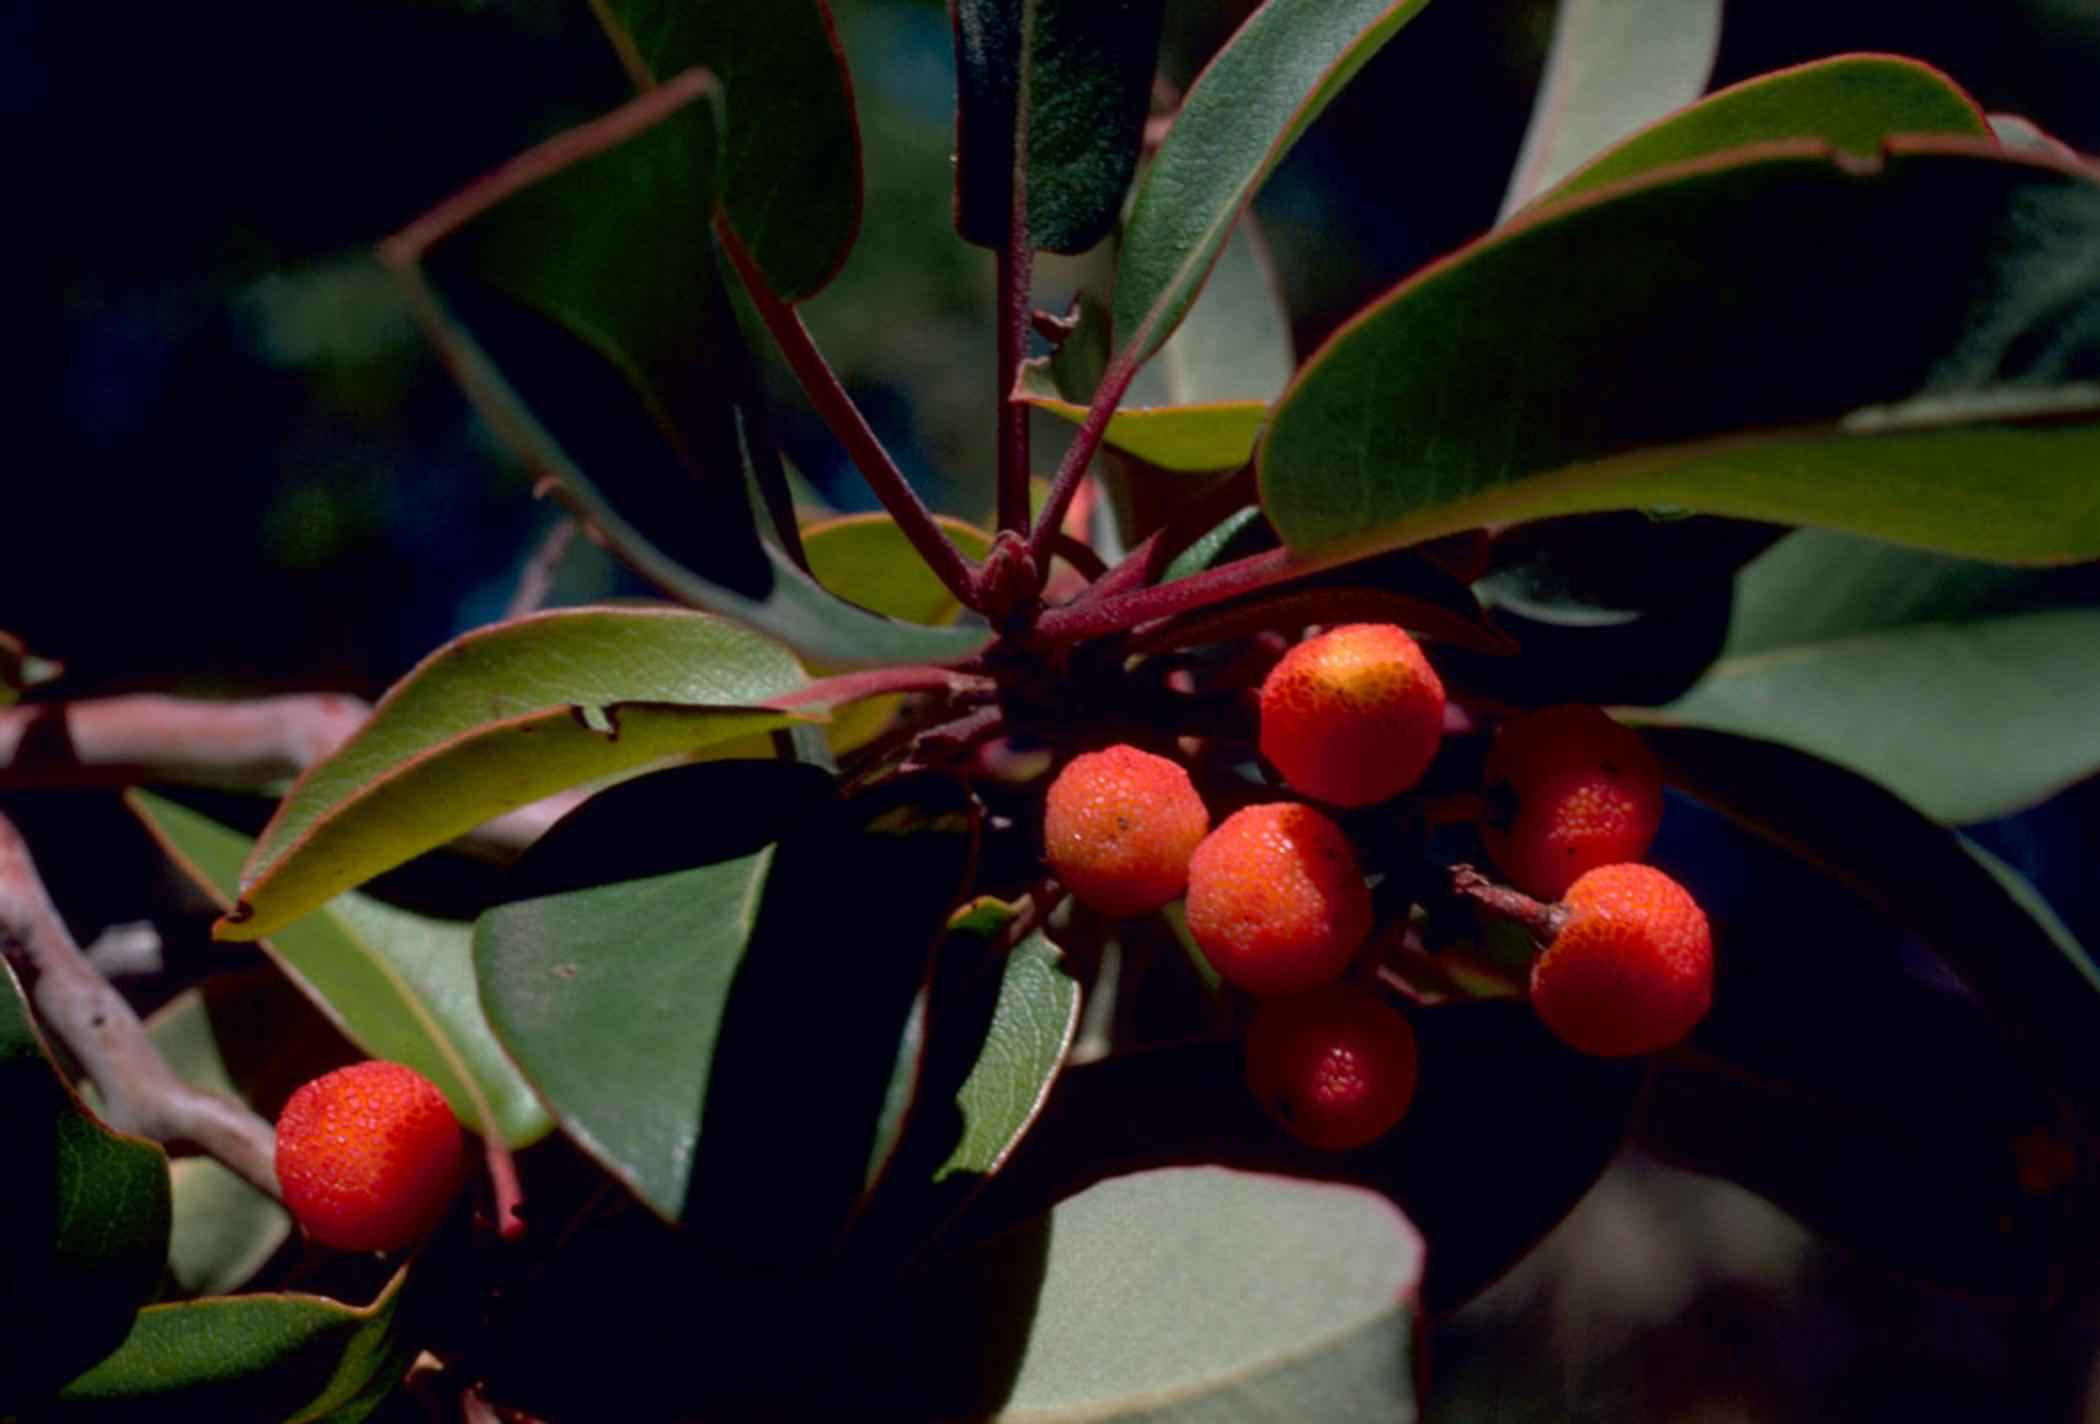 drone usage with File Texas Madrone Or Marina Strawberry Tree Plant Fruits Arbutus Xalapensis on File f 106a 49th fis wright Patterson afb 1986 furthermore File TT Copter OctoCOpter high lifting likewise Artificial Intelligence Top Startups also French Startup Launches Hydrogen Powered Bicyles further Quadcopter Drone.